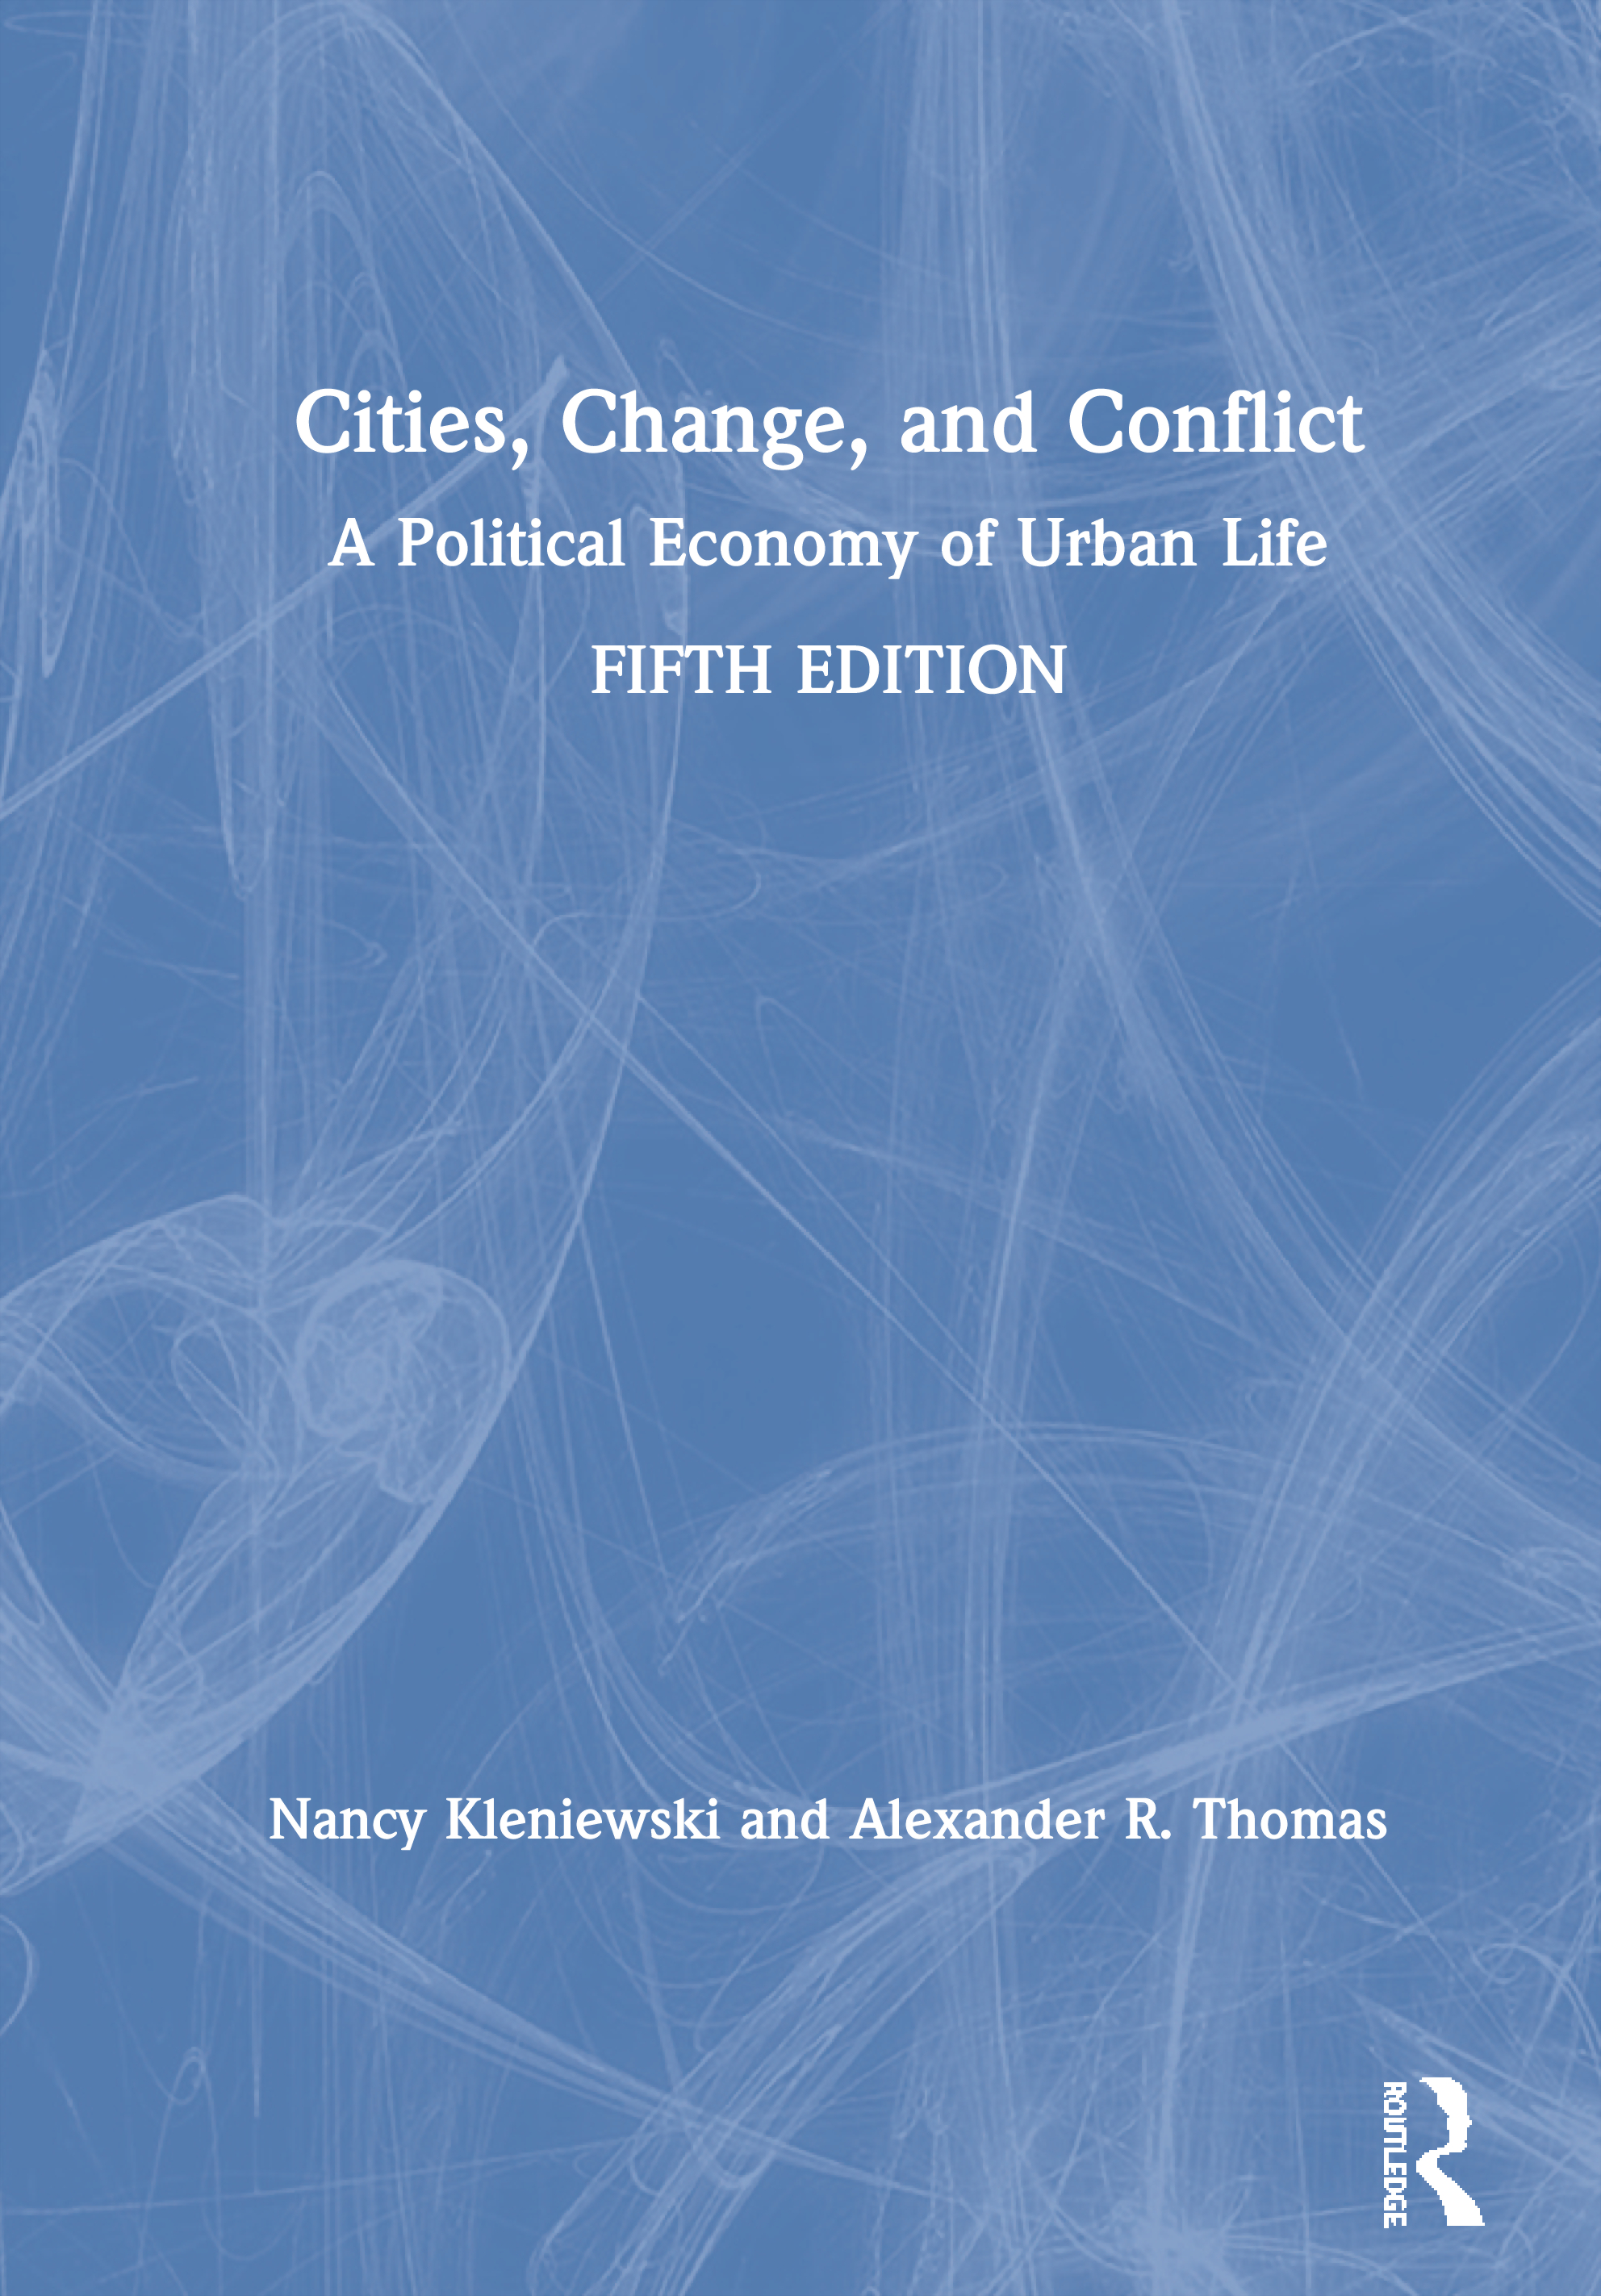 Cities, Change, and Conflict: A Political Economy of Urban Life book cover